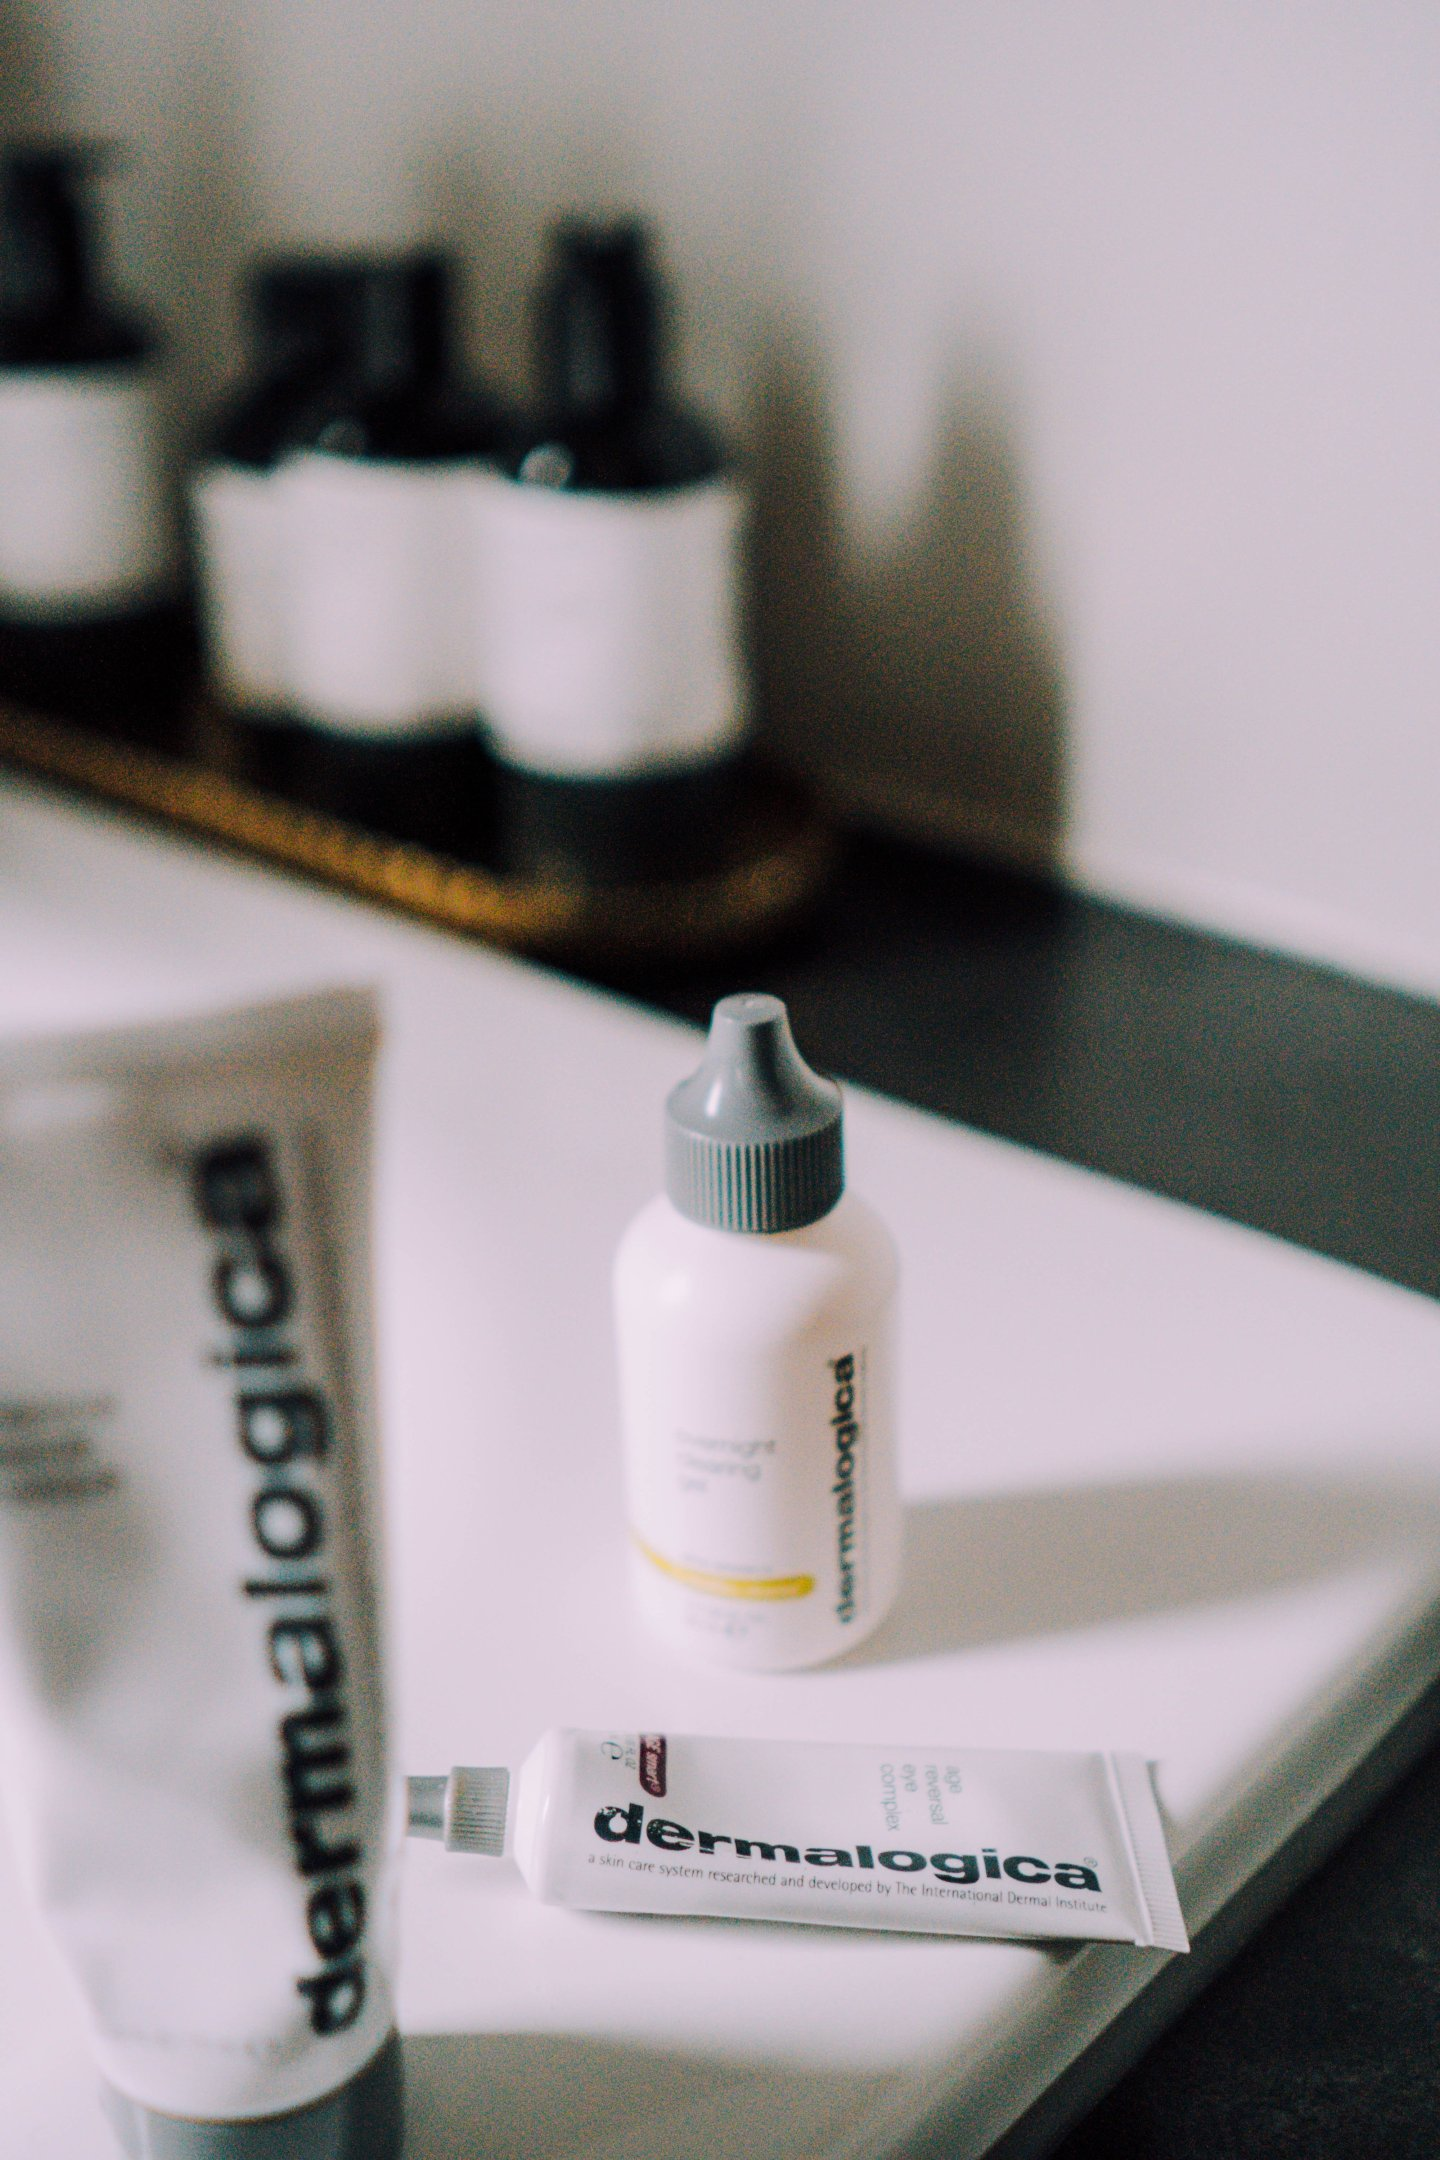 Dermalogica Top 3 Produkte - Nowshine Beauty Blog über 40 - Overnight Clearing Gel. Age reversal Eye Complex - Charcoal Rescue Masque